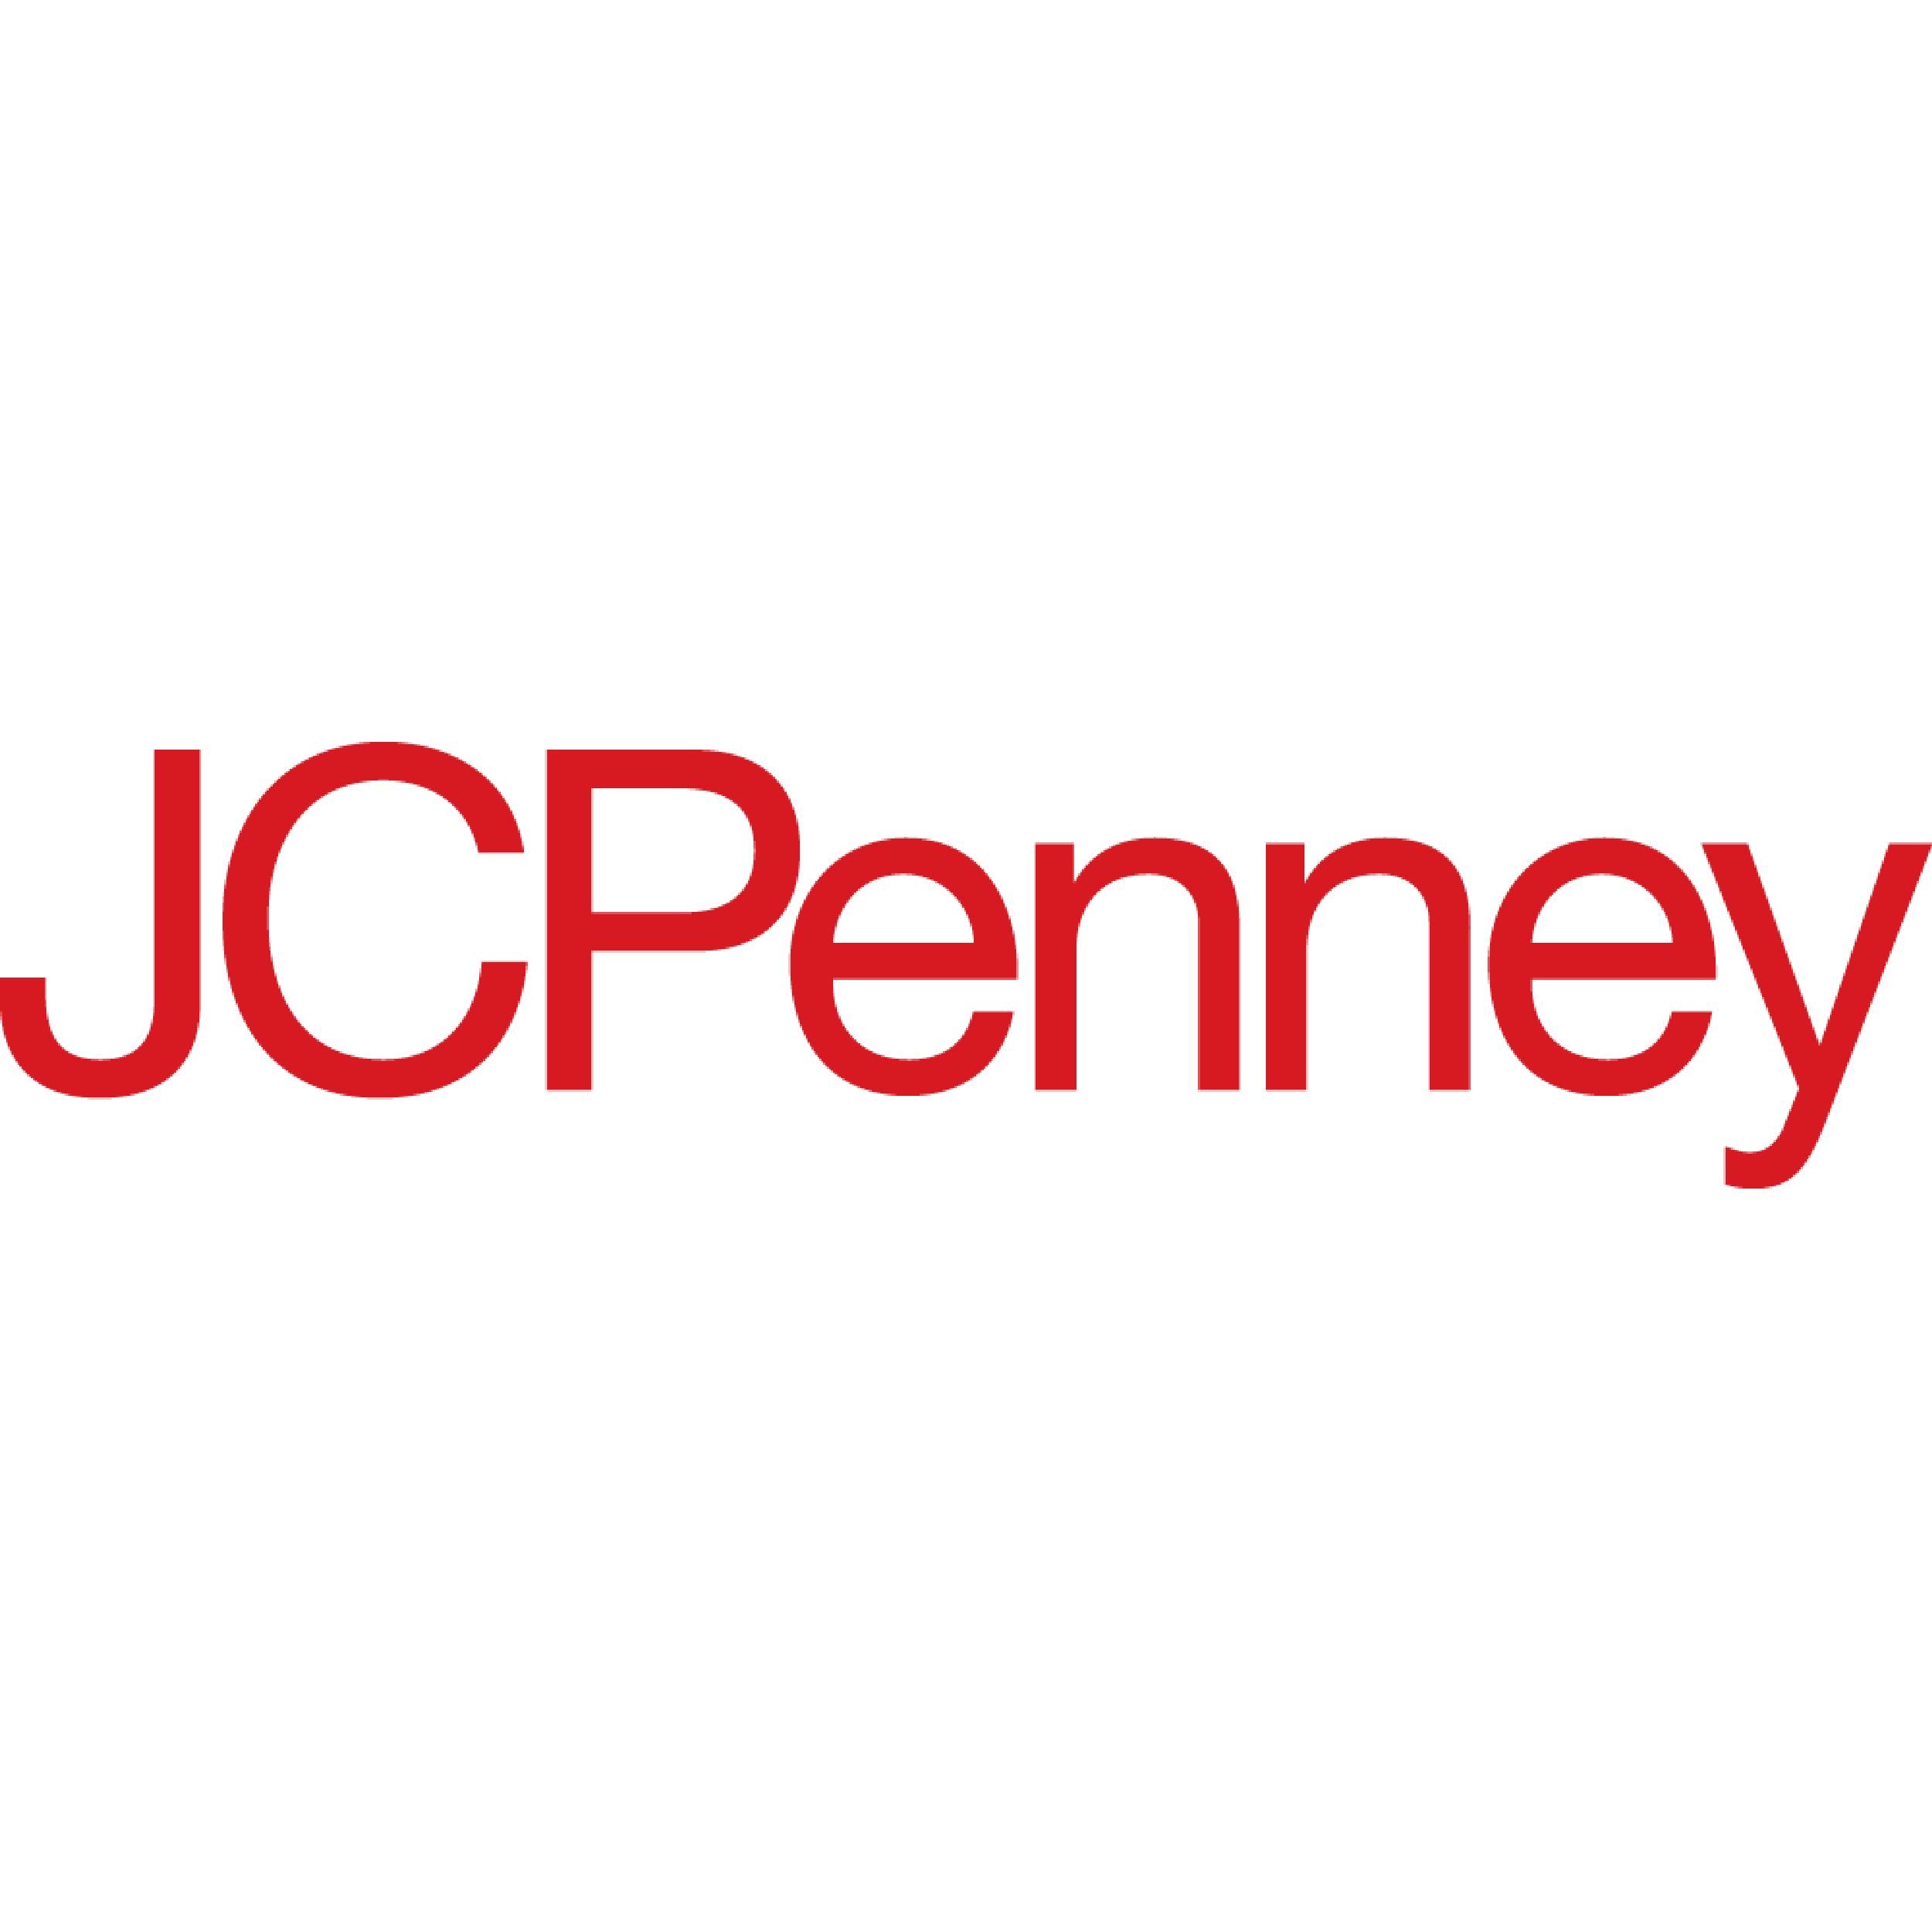 JCPenney - Roswell, NM - Department Stores